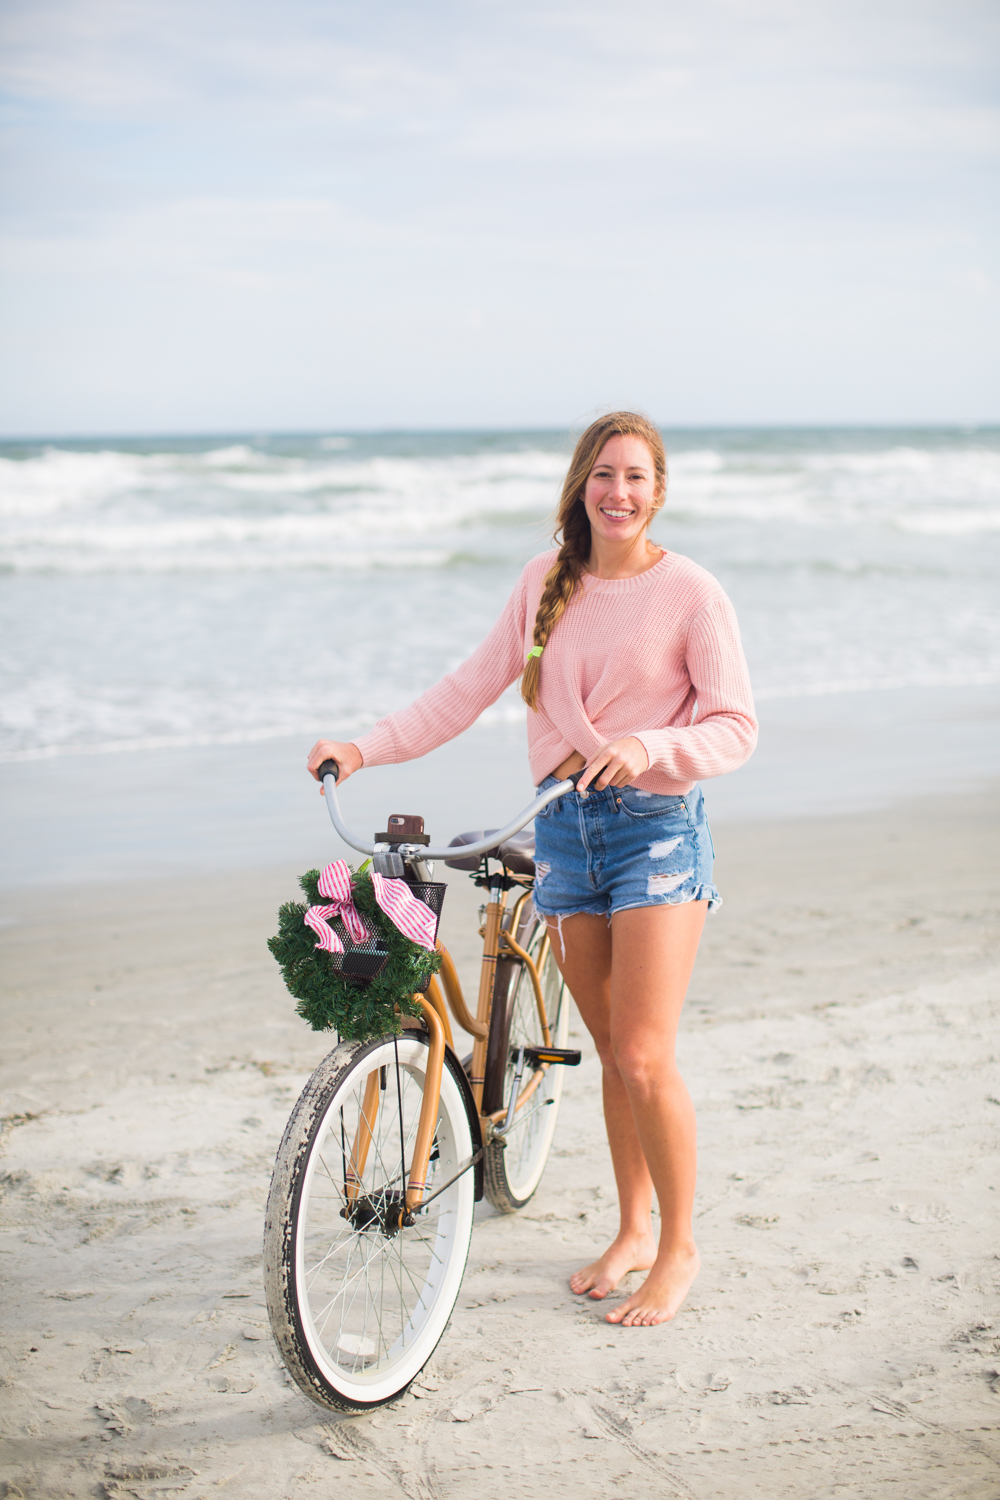 Sweaters to Wear During the Holiday Season | Beach Bike Ride | Winter Outfit Ideas | Christmas in Florida | Beach Bike Ride | Cropped Pink Sweater | Twisted Back Sweater